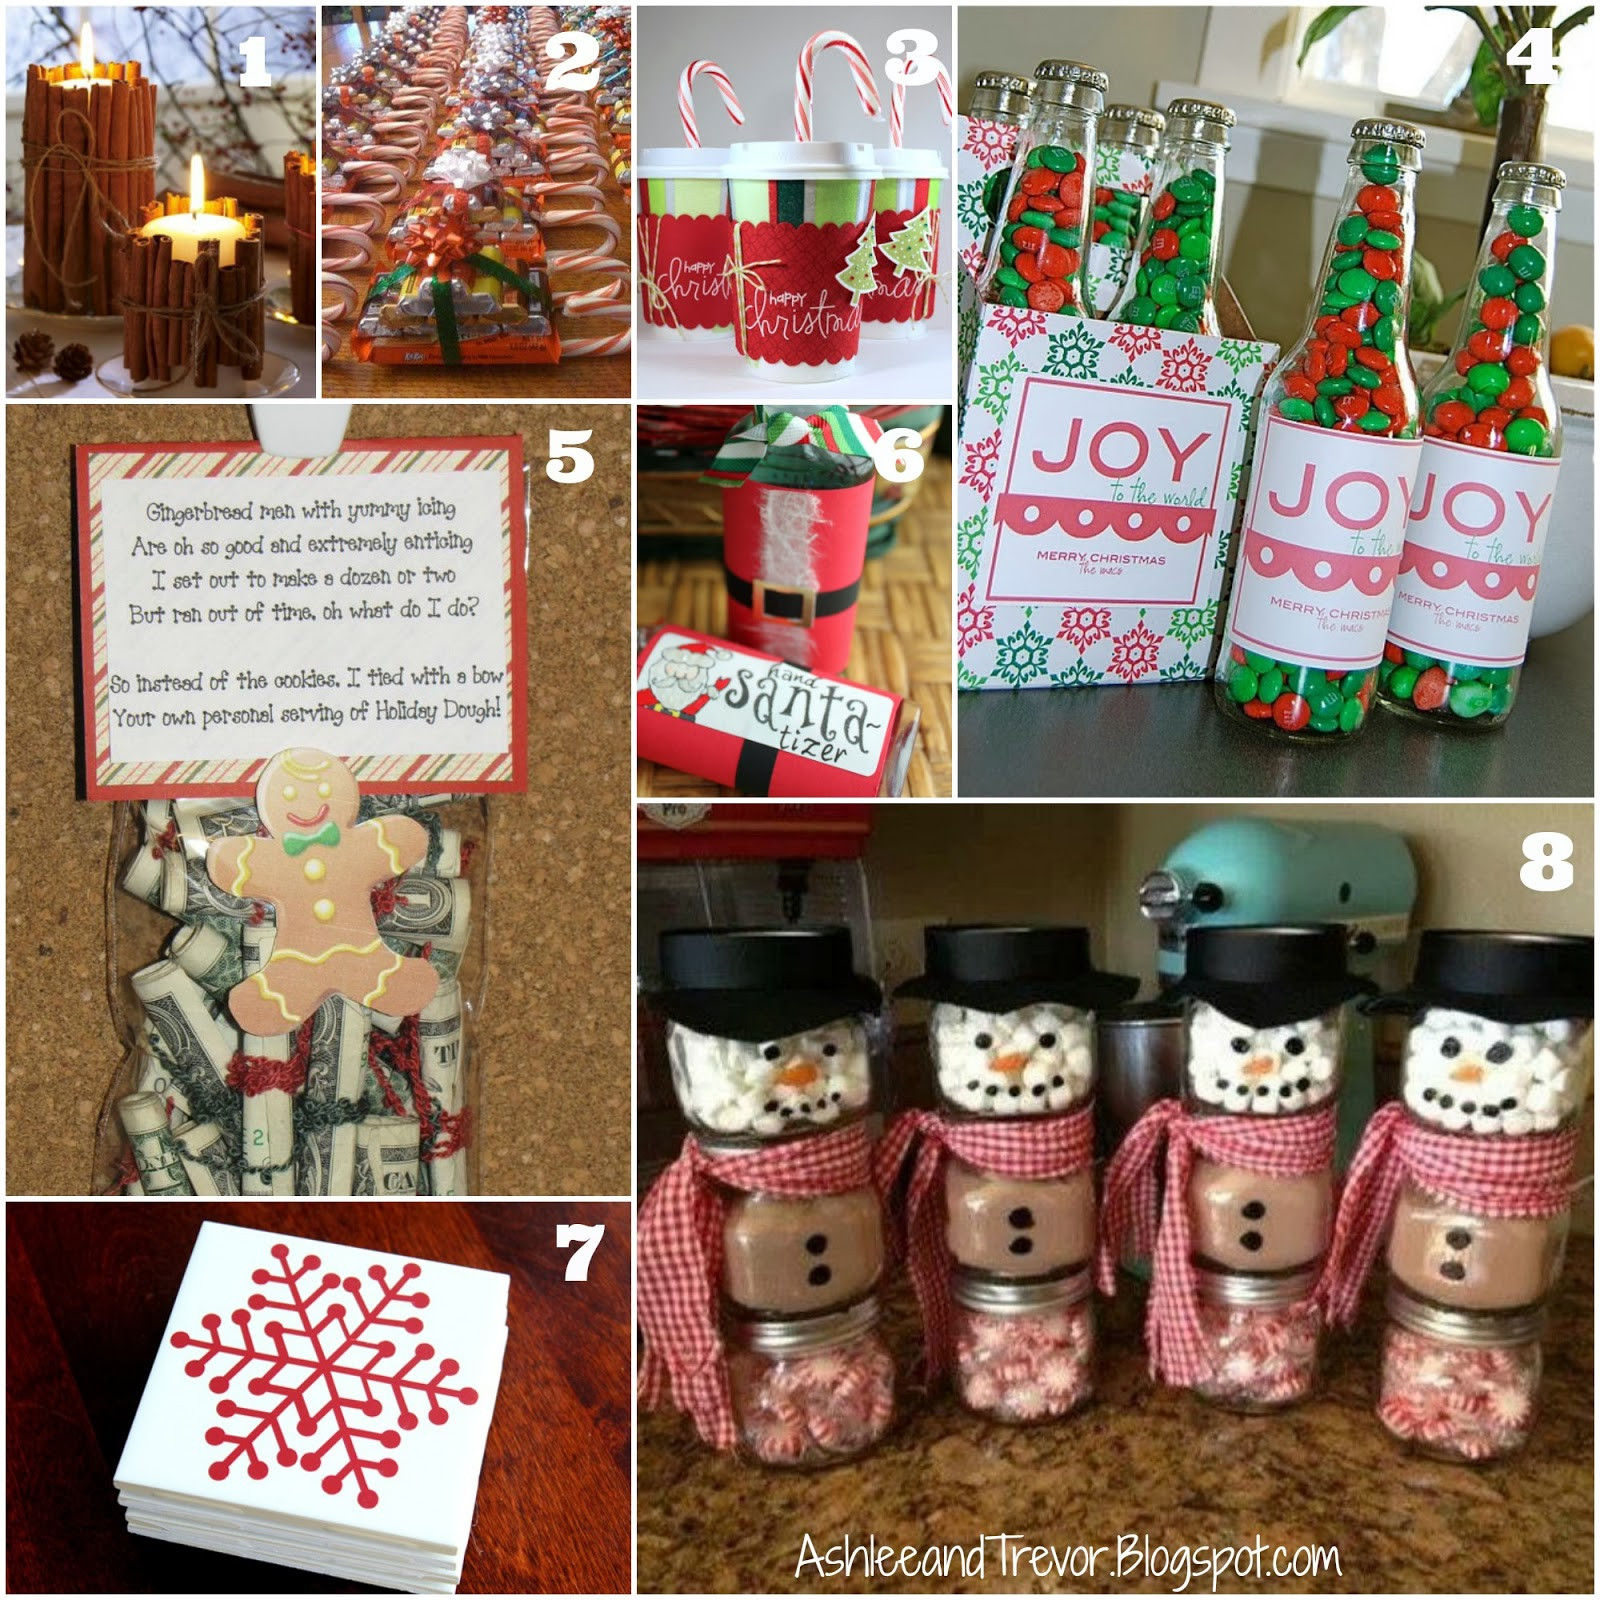 Best ideas about DIY Christmas Gifts For Coworkers . Save or Pin Smith Family DIY Inexpensive Christmas Gifts Now.